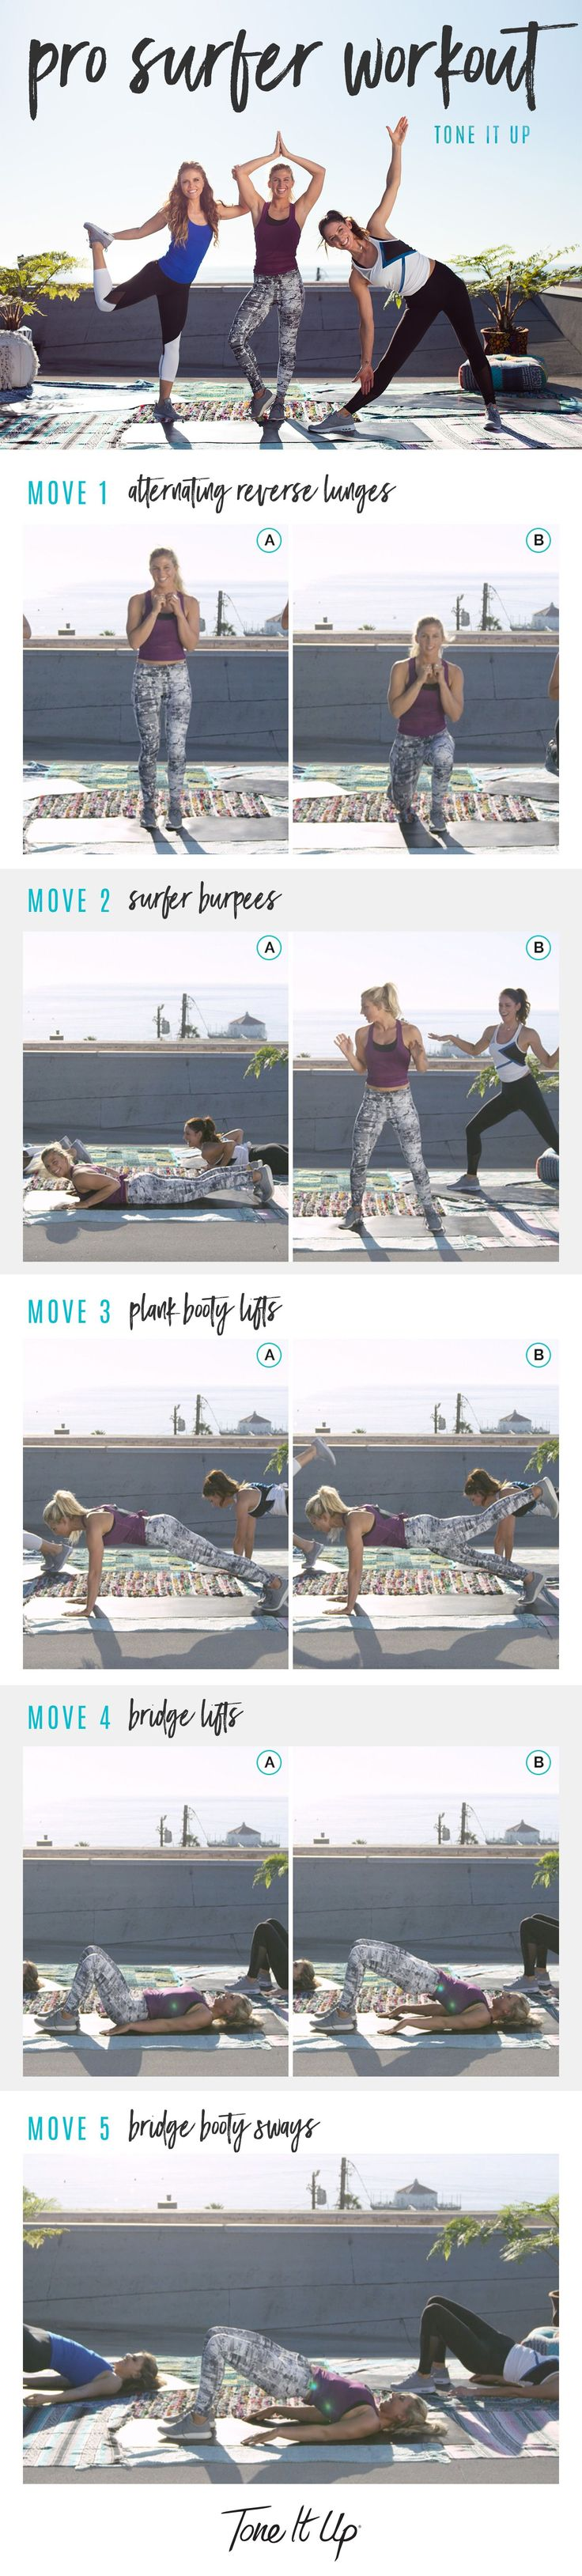 Tone It Up Pro Surfer Workout with Karena, Katrina, & Sage